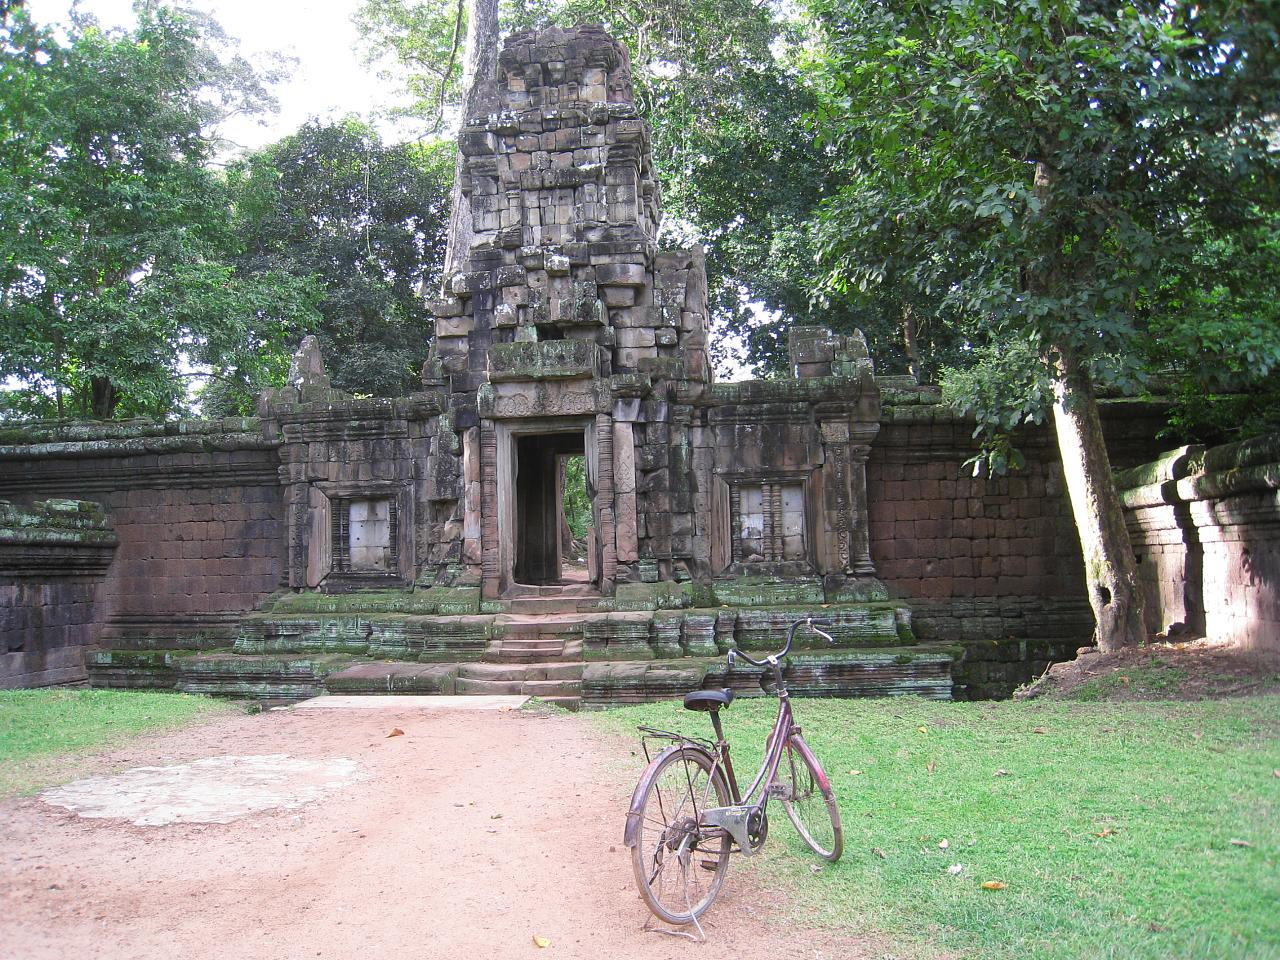 Renting a bicycle to visit the temples is a popular option for visitors.